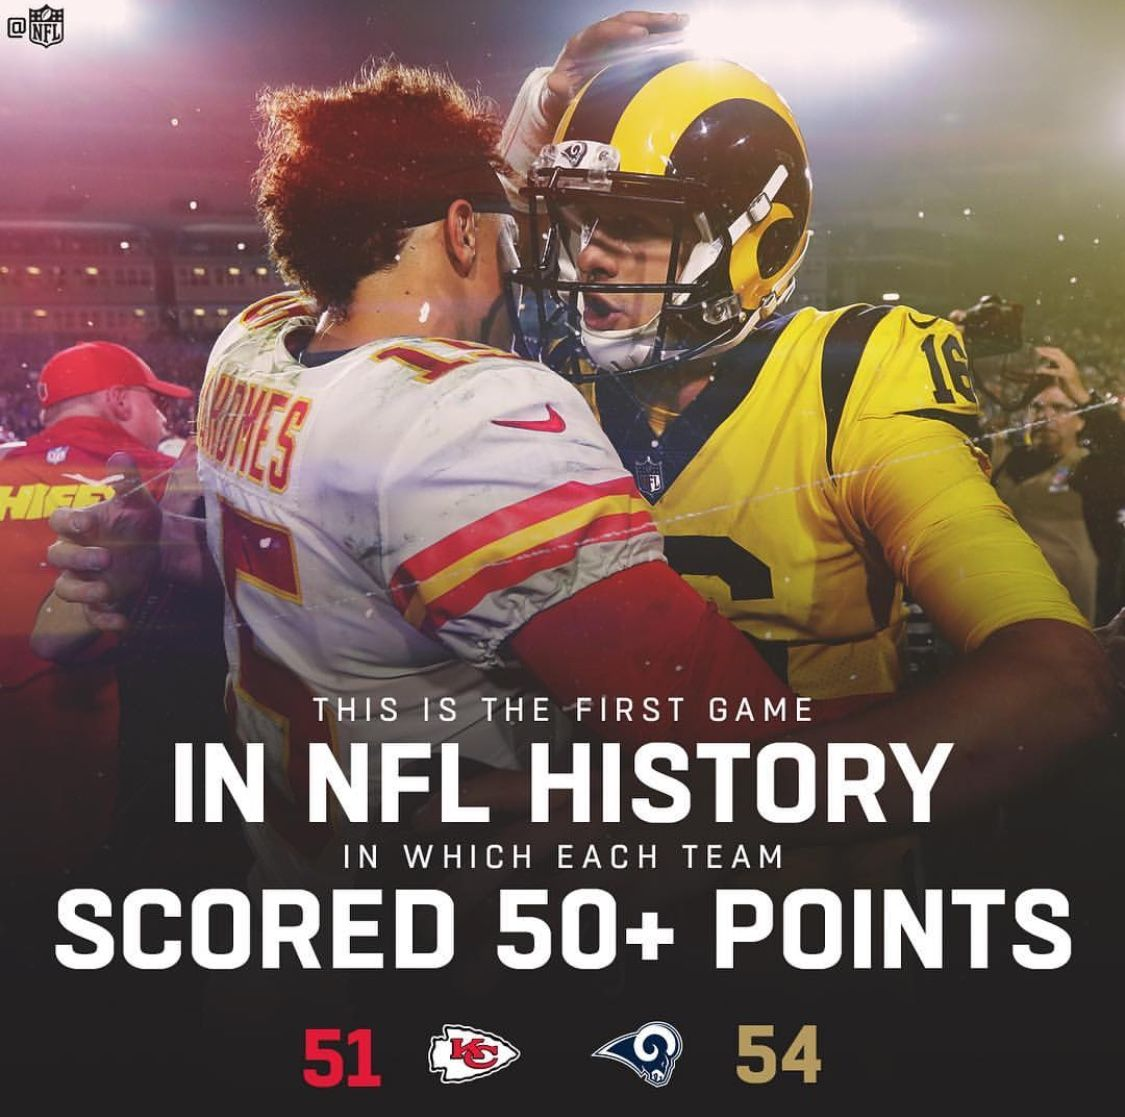 Wow Great Game Between The Kansas City Chiefs And The Los Angeles Rams Nfl Nfl History Rams Football